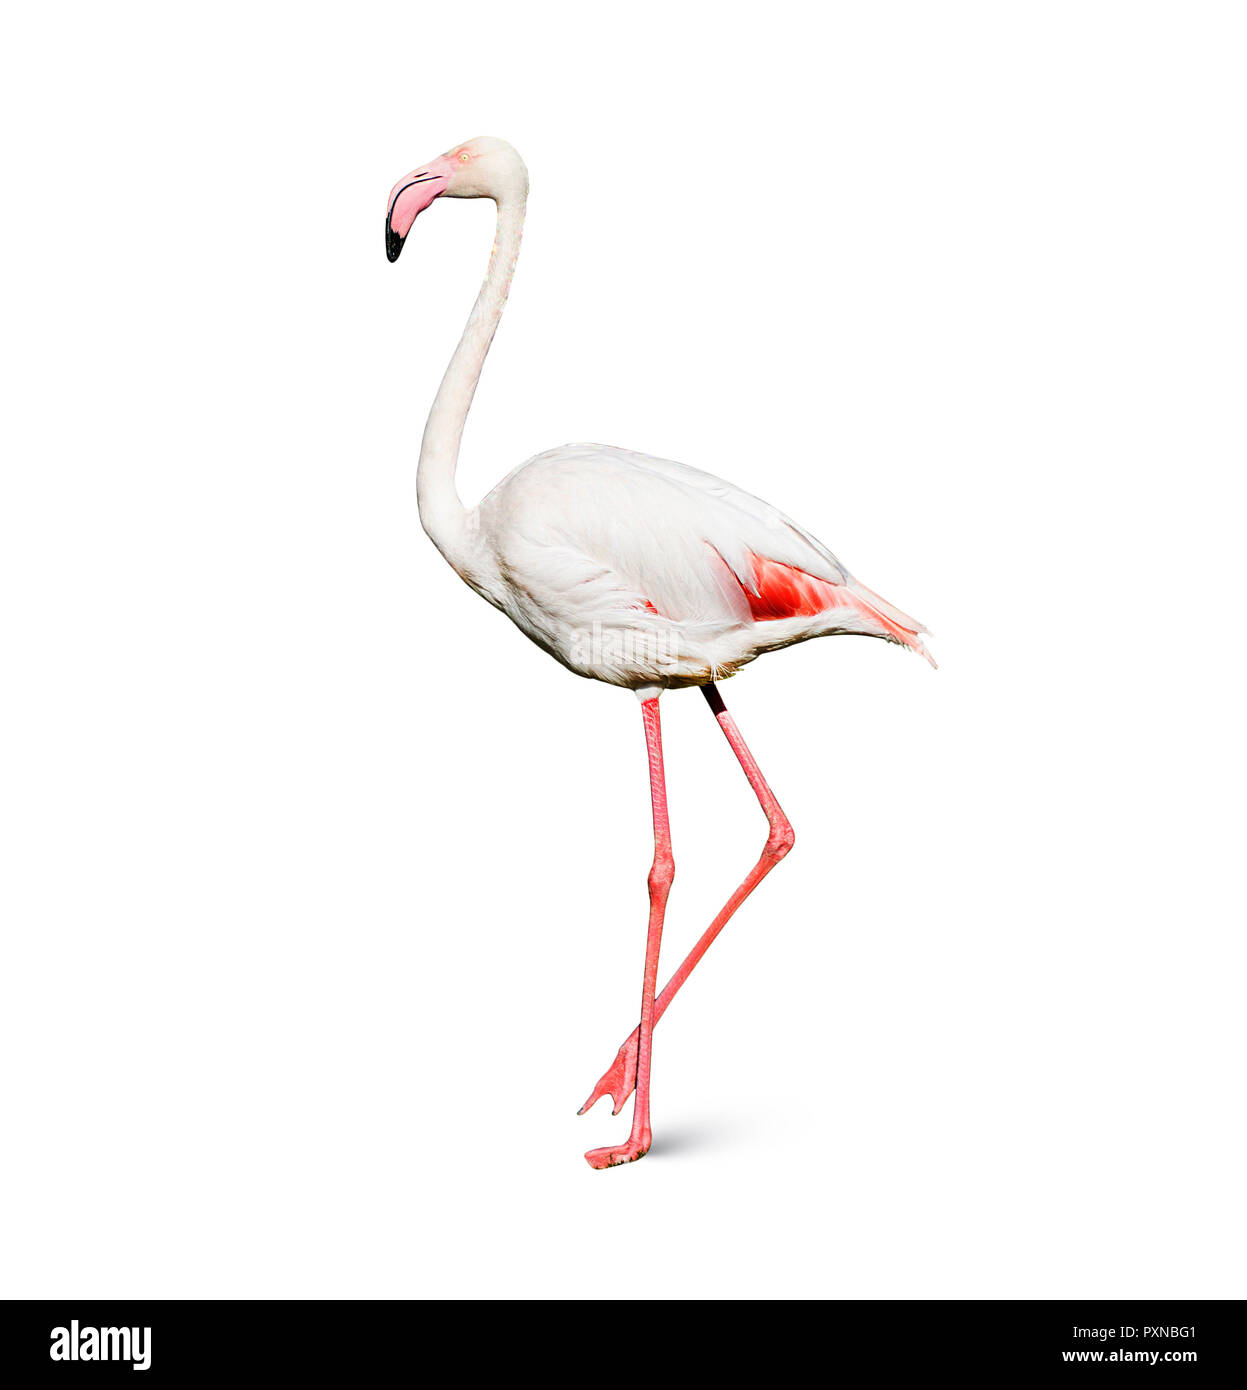 flamingo isolated on white background Stock Photo